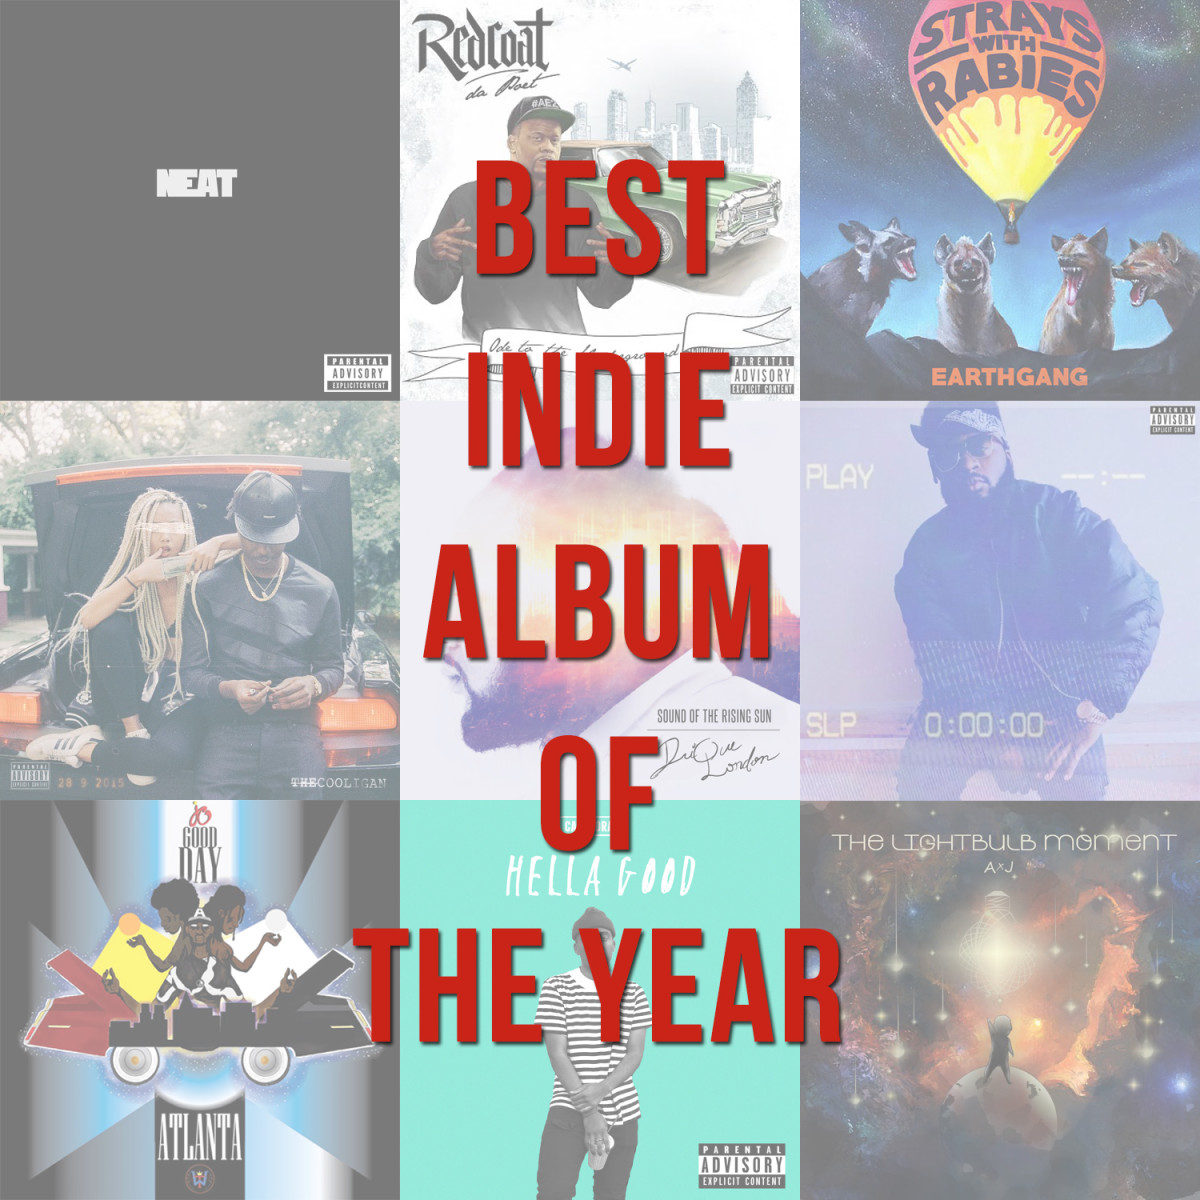 Best Indie Album Of The Year